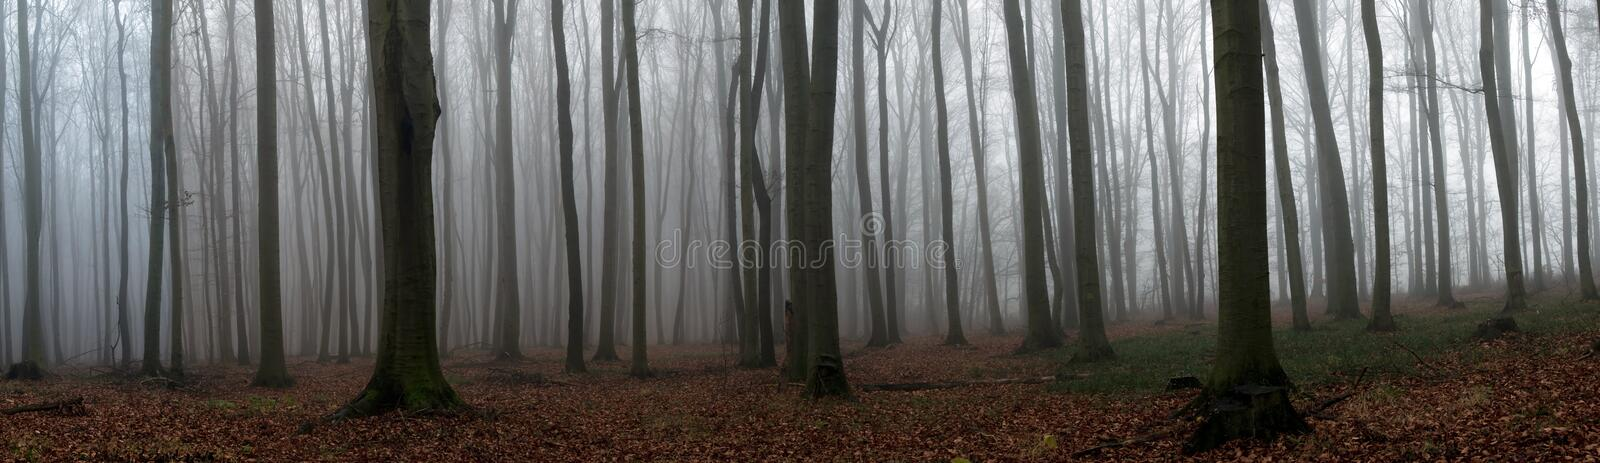 Misty autumn royalty free stock image